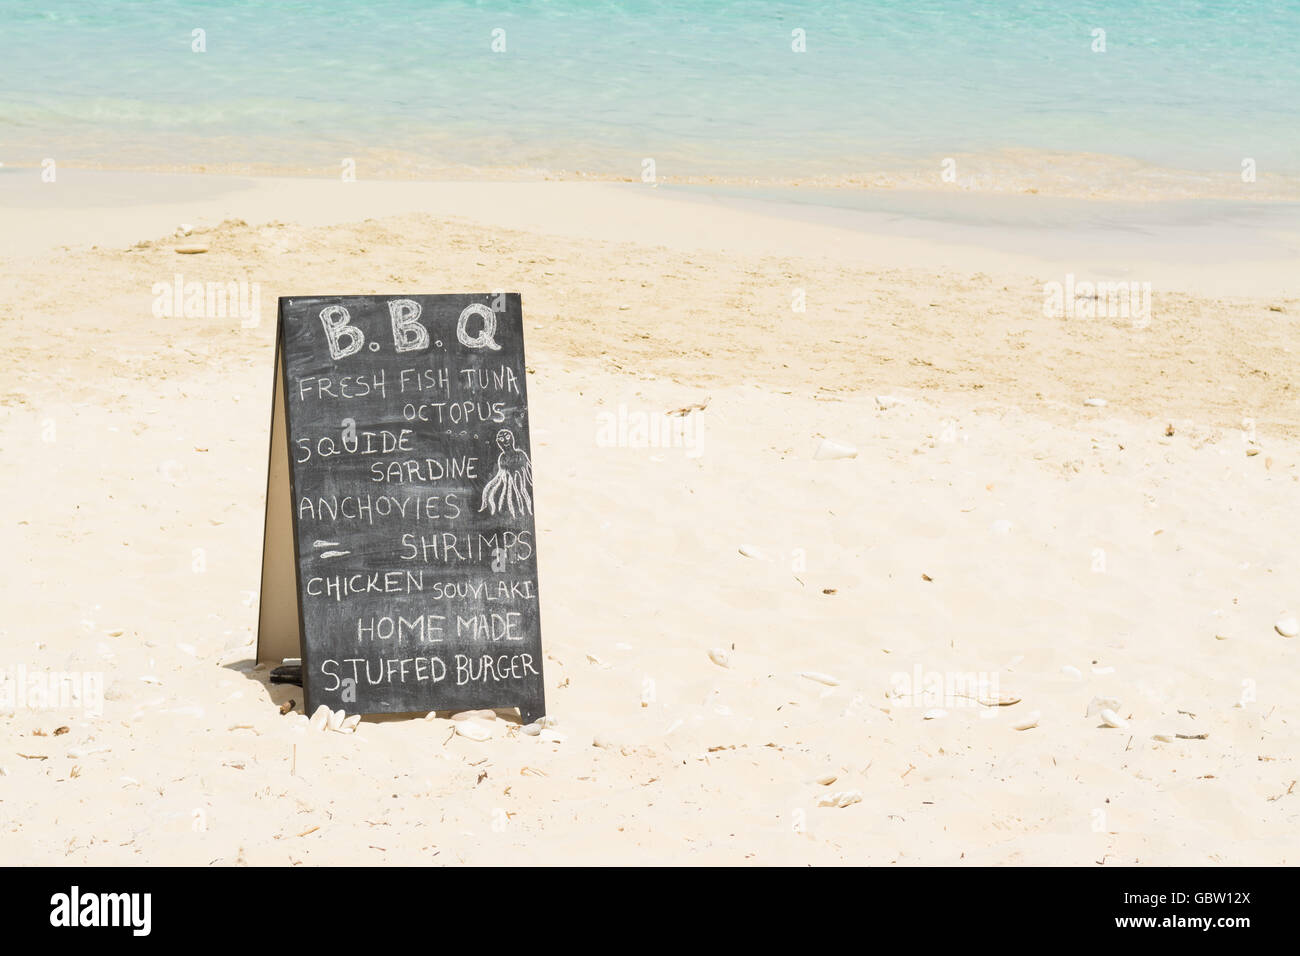 Beach BBQ sign on beach in Antipaxos, Greece - Stock Image